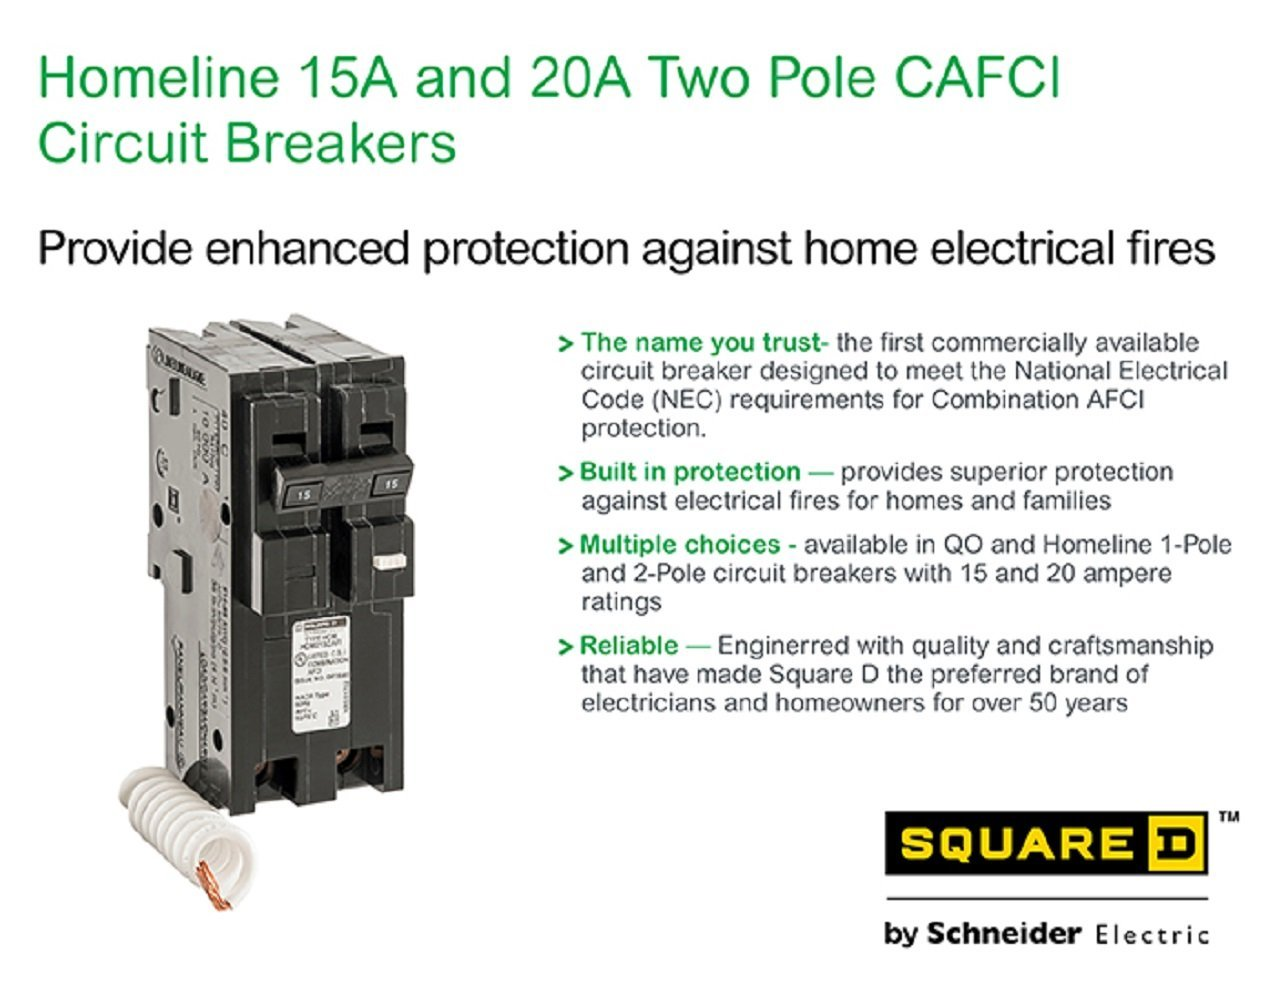 Square D by Schneider Electric HOM215CAFIC Homeline 15 Amp Two-Pole CAFCI Circuit Breaker, by Square D by Schneider Electric (Image #2)